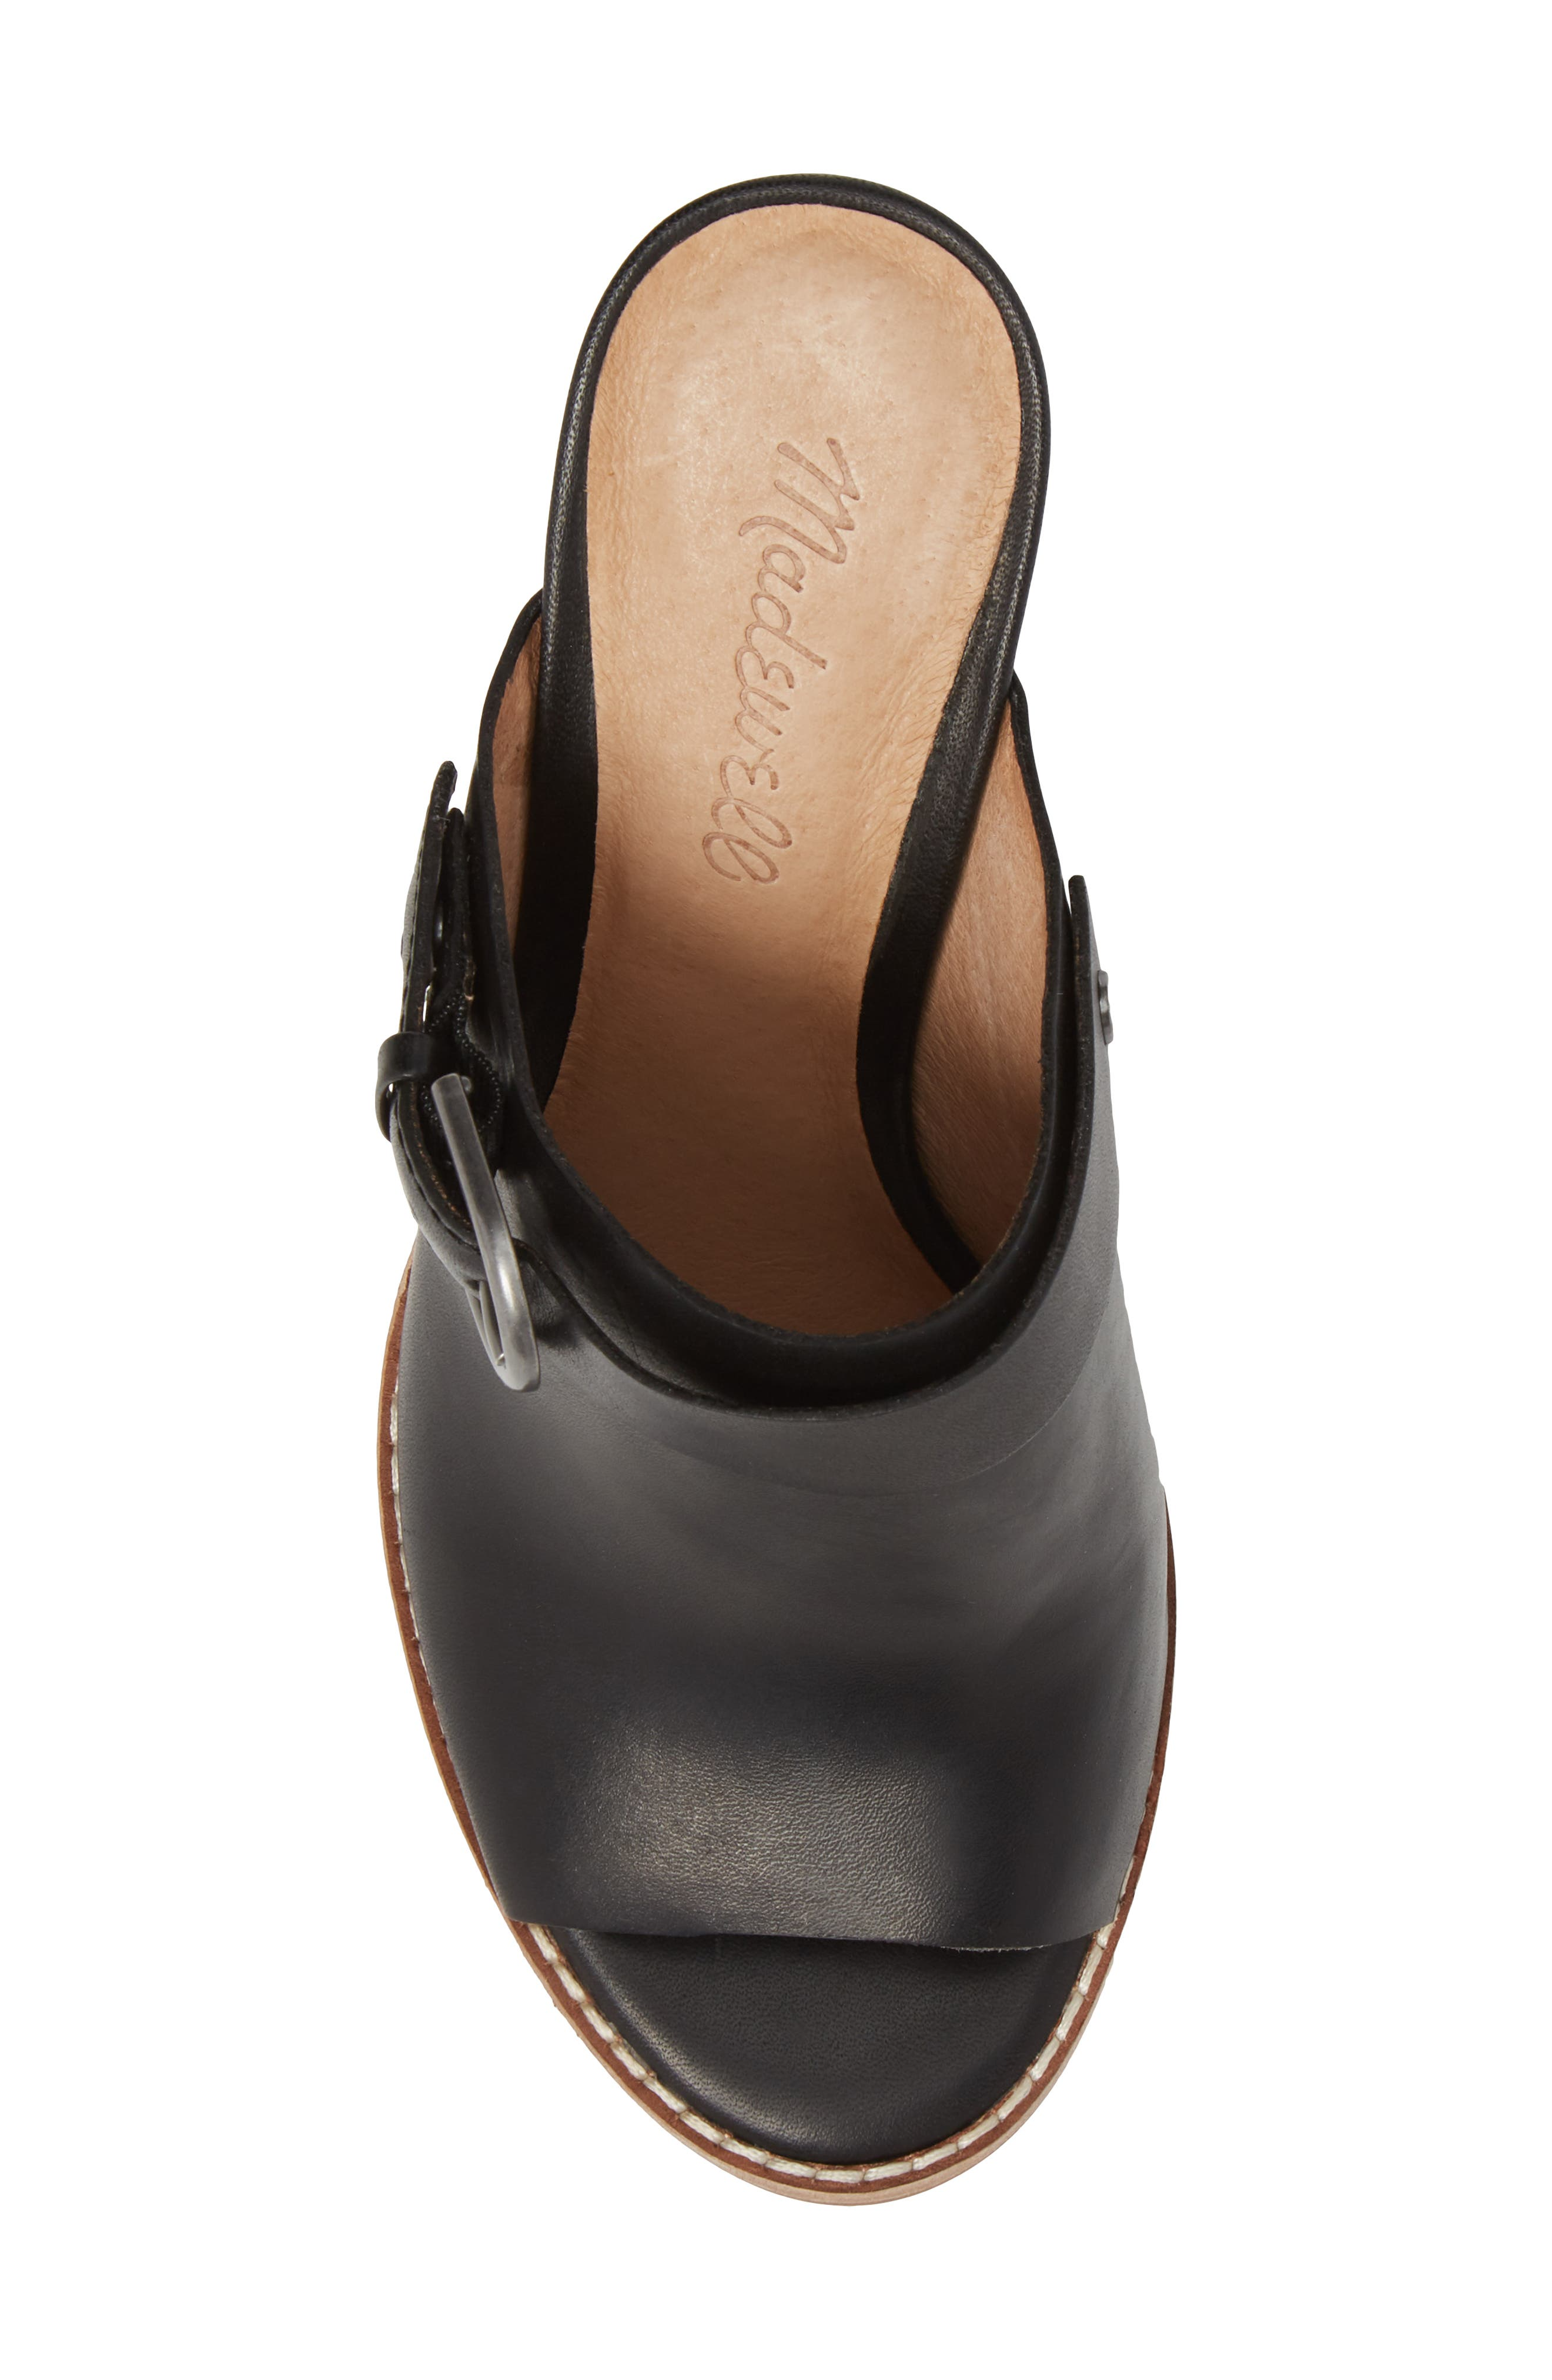 MADEWELL, Riley Slingback Mule, Alternate thumbnail 5, color, TRUE BLACK LEATHER